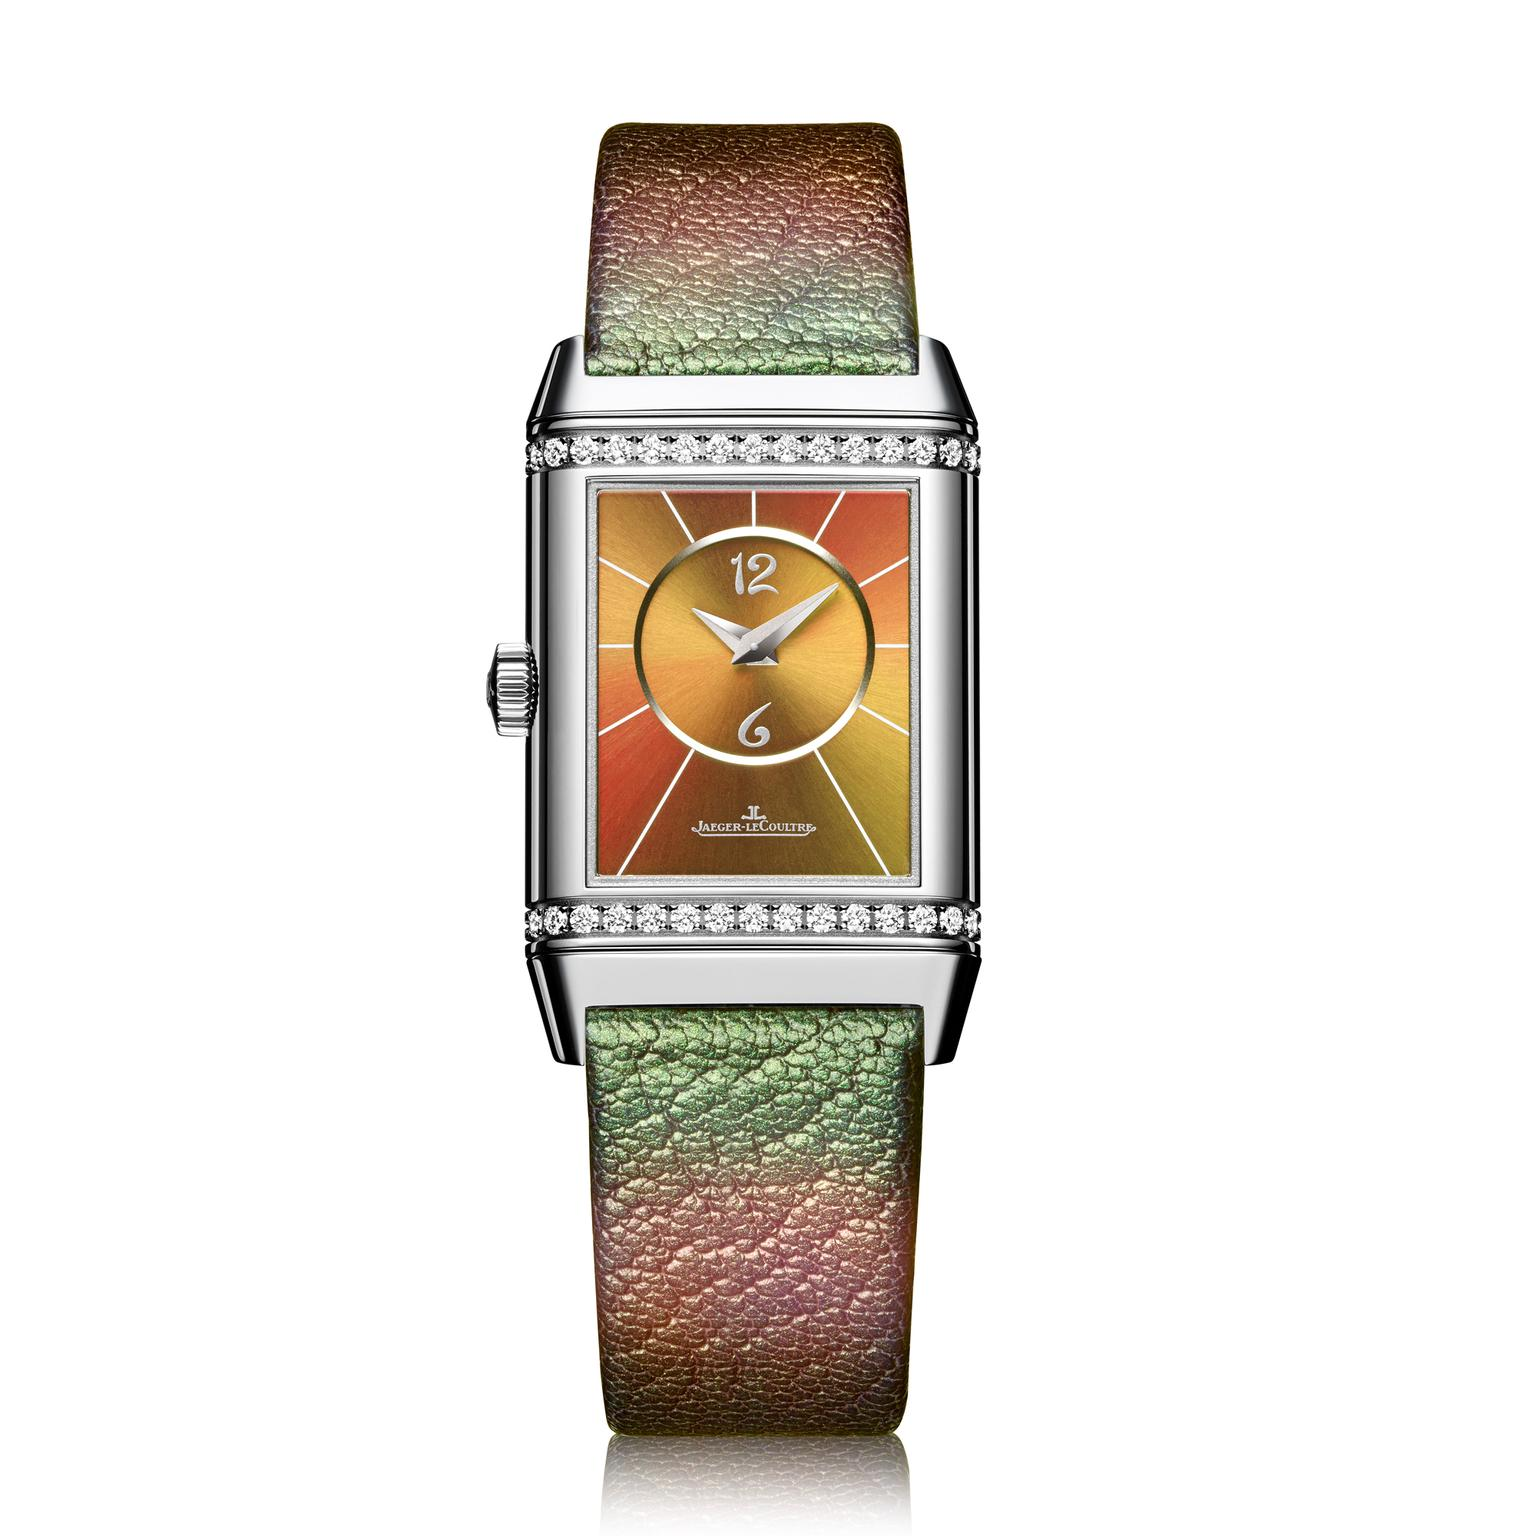 Jaeger-LeCoultre Reverso by Christian Louboutin - reverse